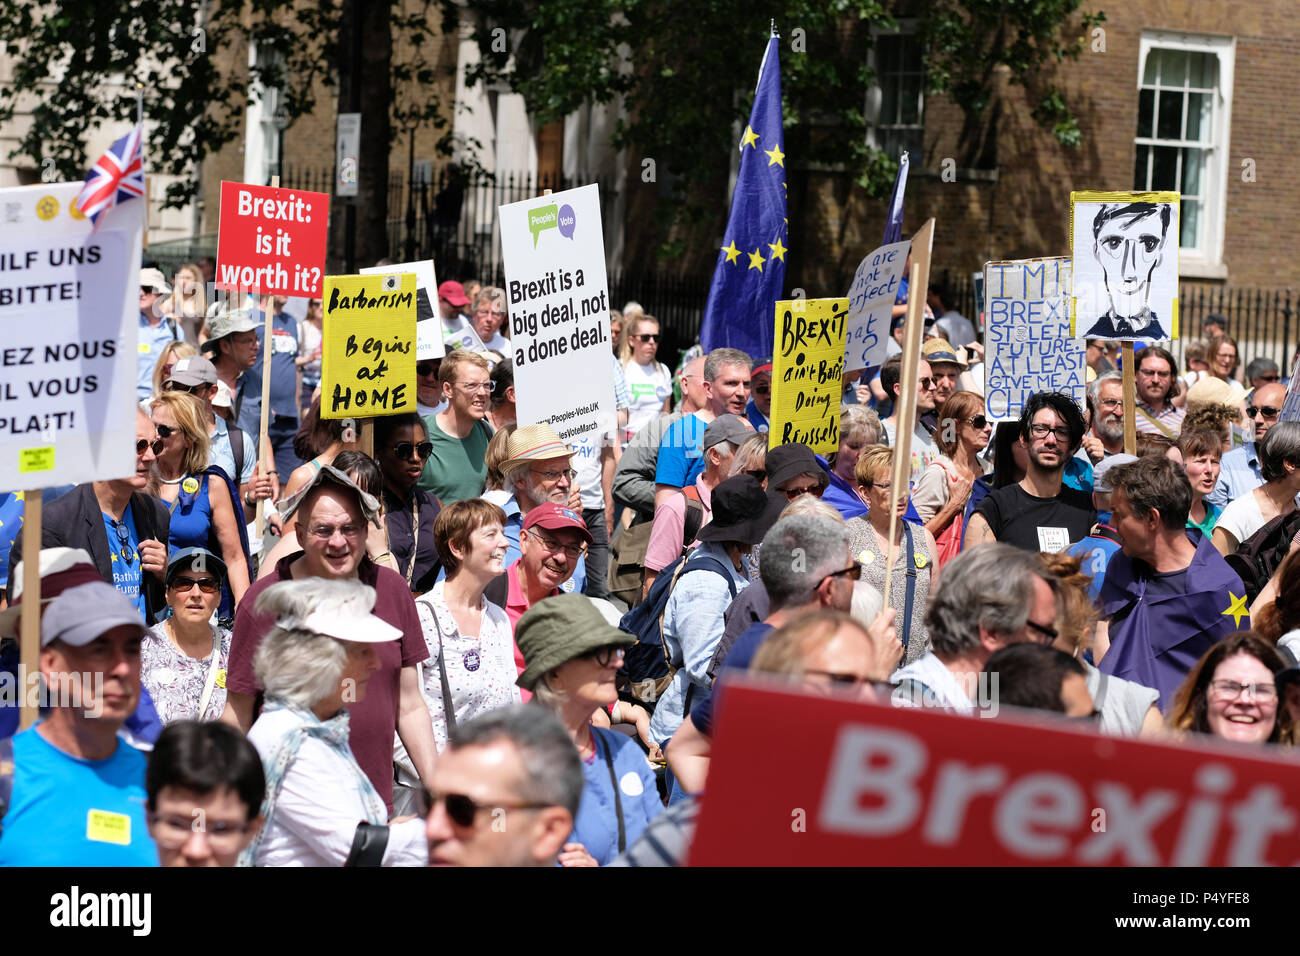 People's Vote, London, UK,  23rd June 2018.  Protestors march along Whitehall on a very hot summers day ( see man with paper hat ) en route Parliament Square to demand a second vote on the final Brexit deal - Steven May /Alamy Live News Stock Photo